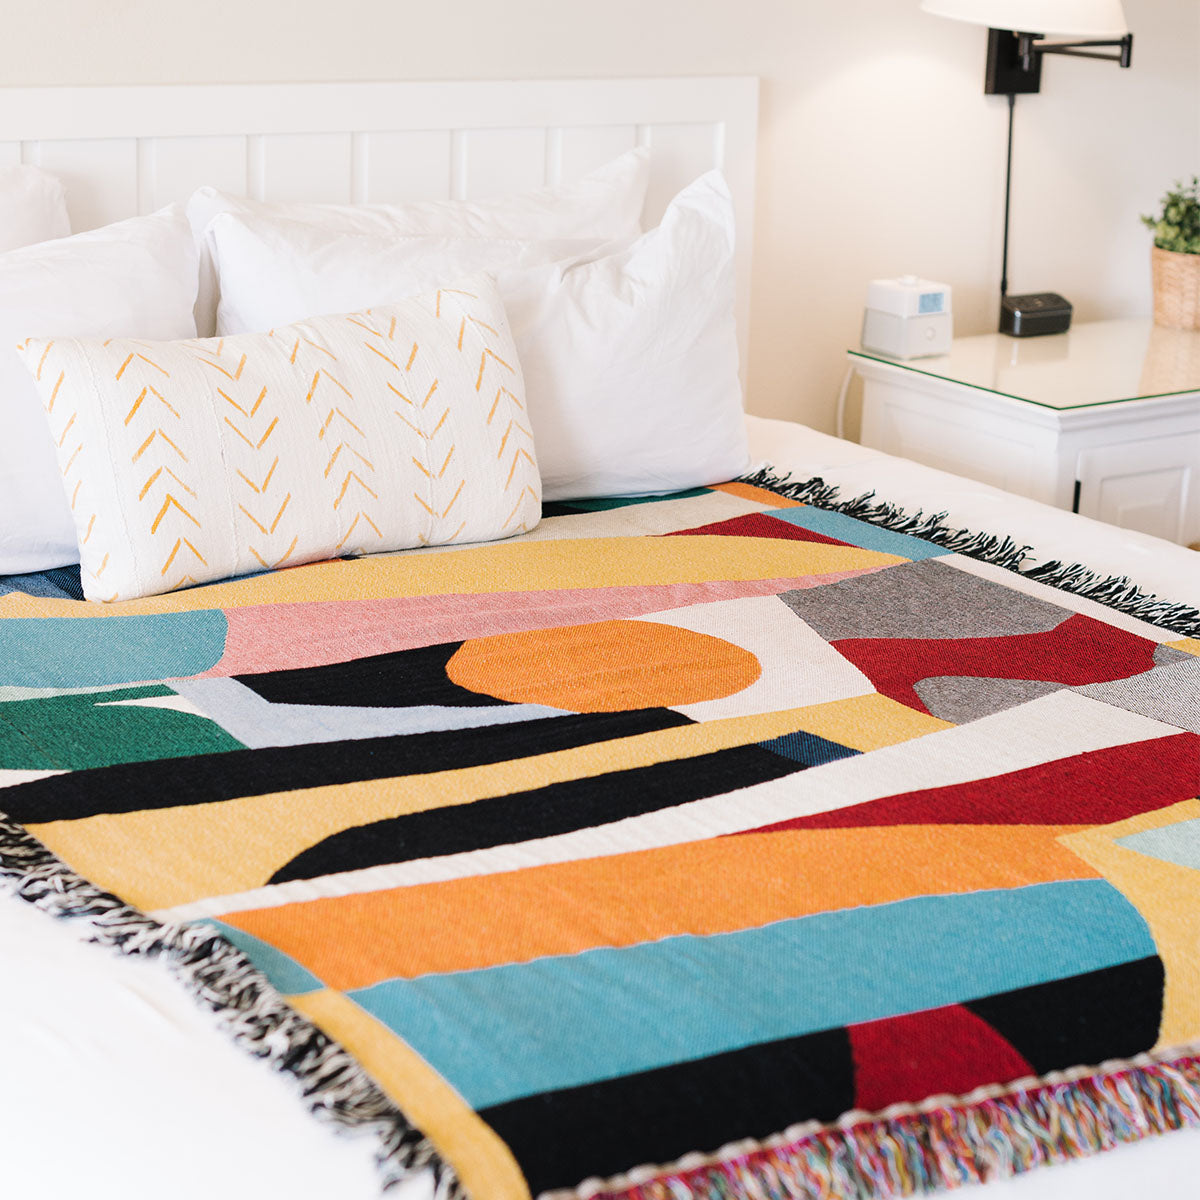 LaChance Blanket